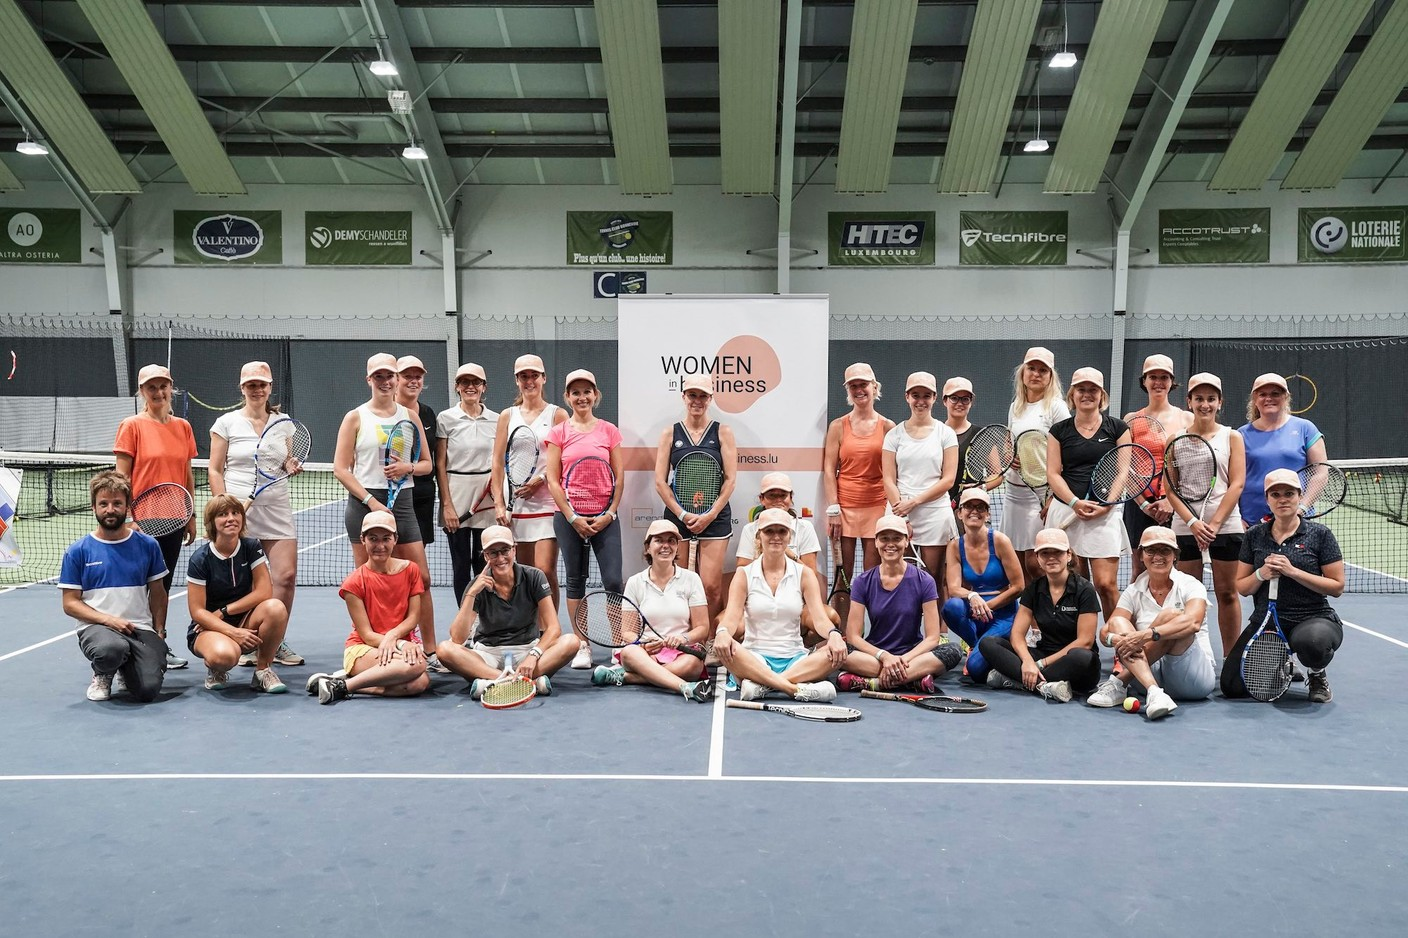 Participants in the first edition of the WIB Tennis Challenge, 9 September 2021. Photo credit: WIB/A. Dehez